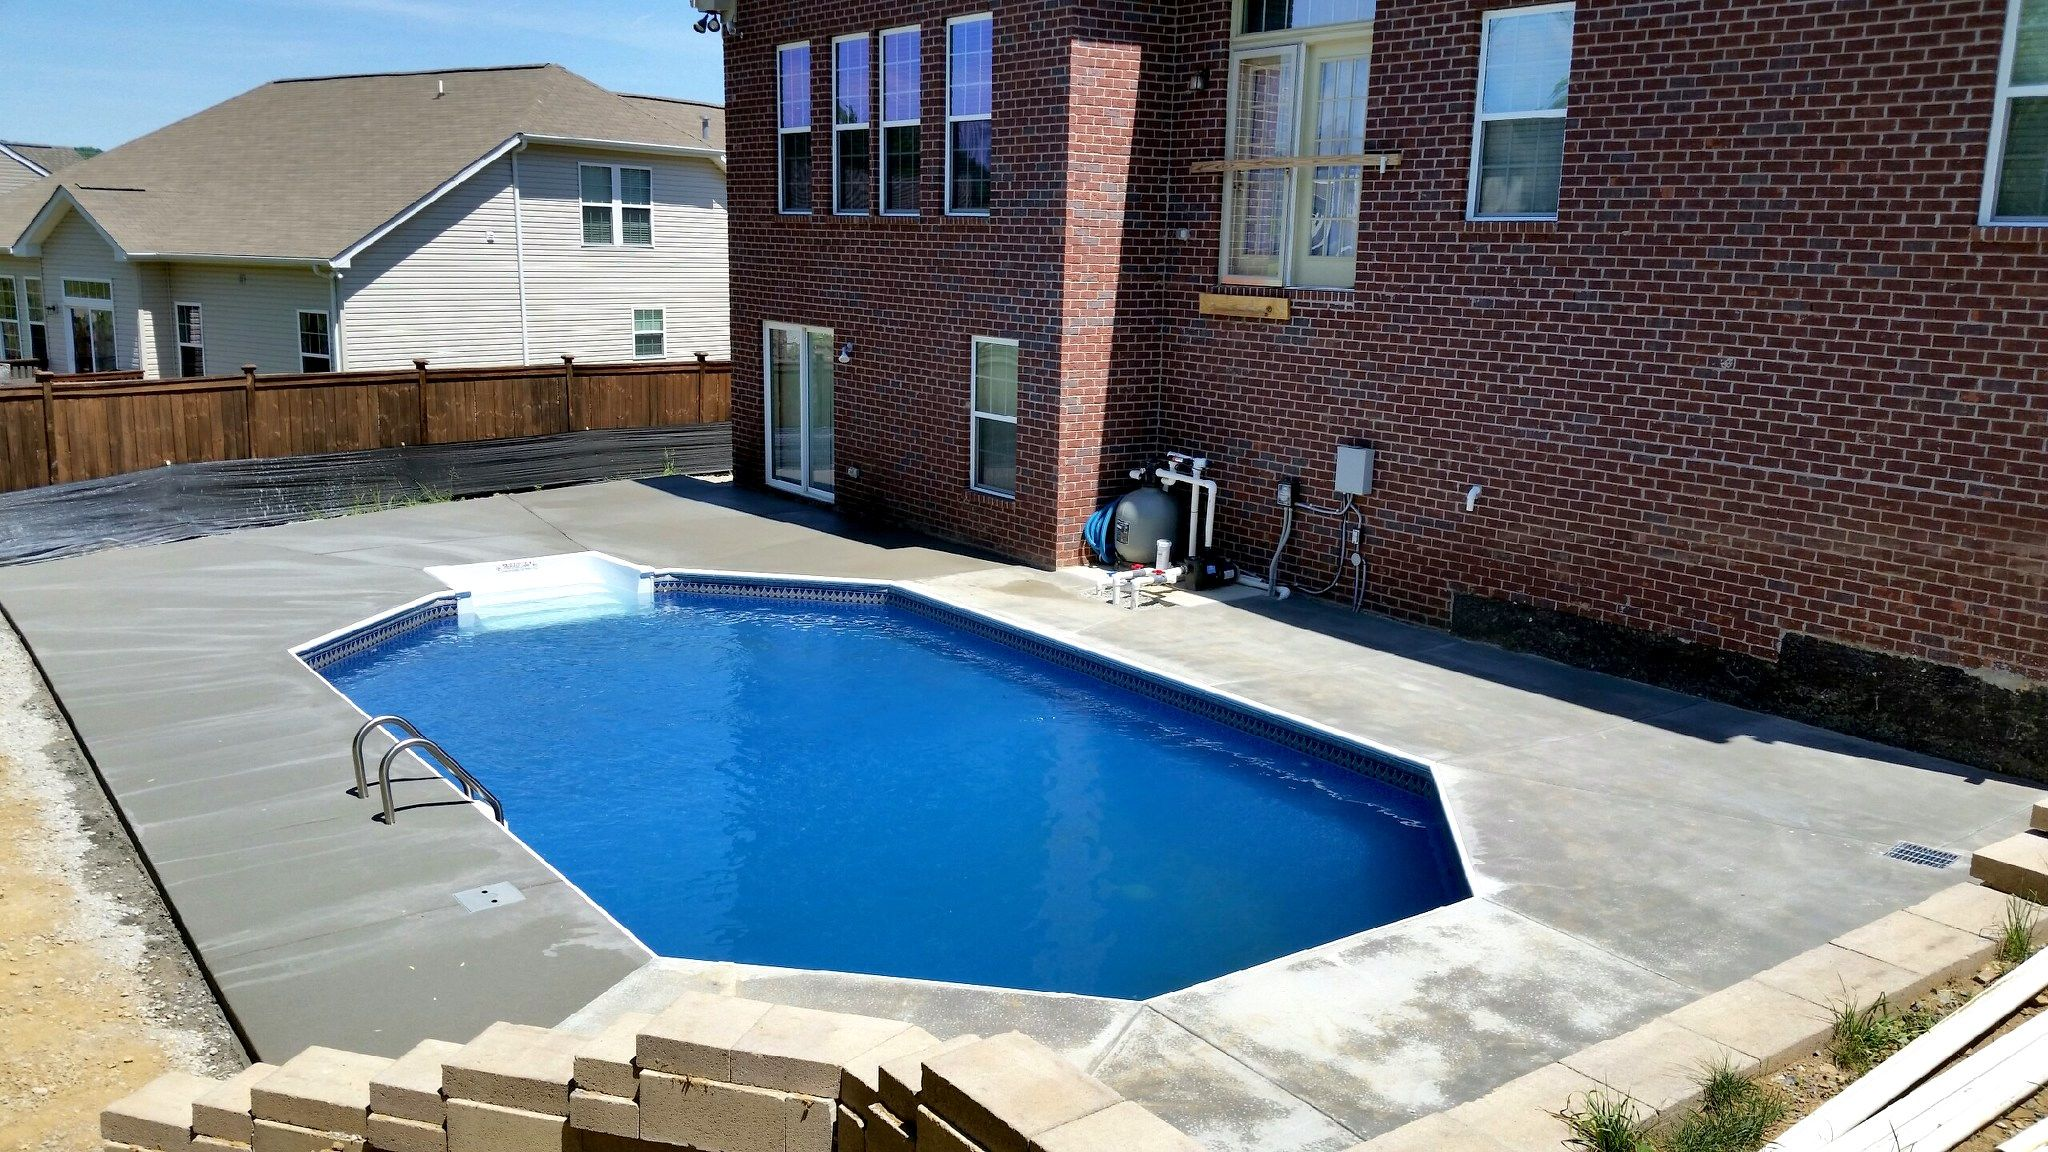 Pool And Spa Depot 17 X 31 Grecian Steel Wall White Aluminum Coping Broom Finished Concrete Decking